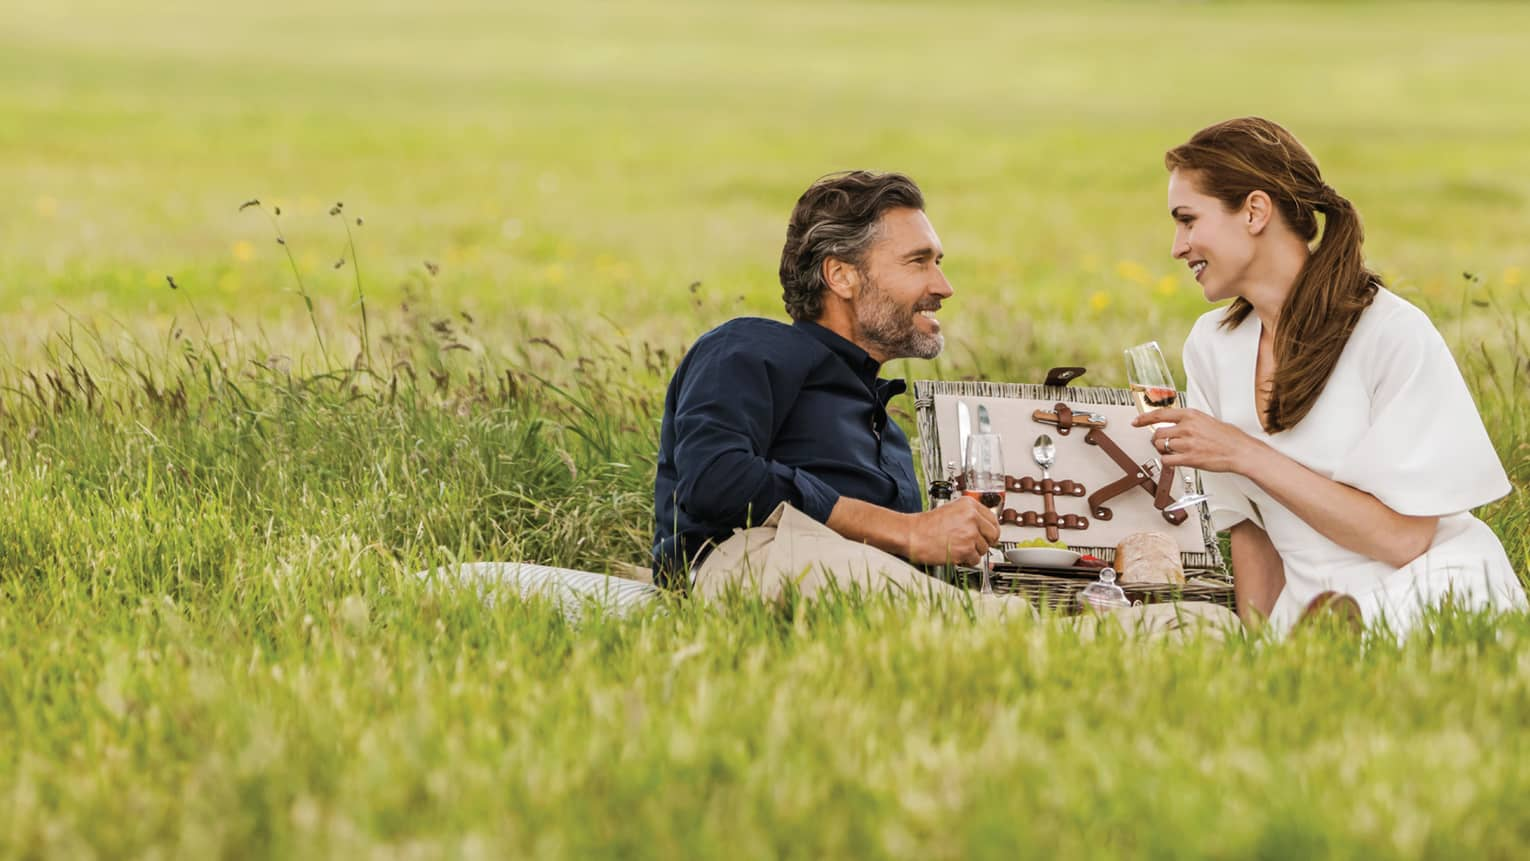 Couple with wine glasses lies in tall green grass with open picnic basket, hotel manor in background